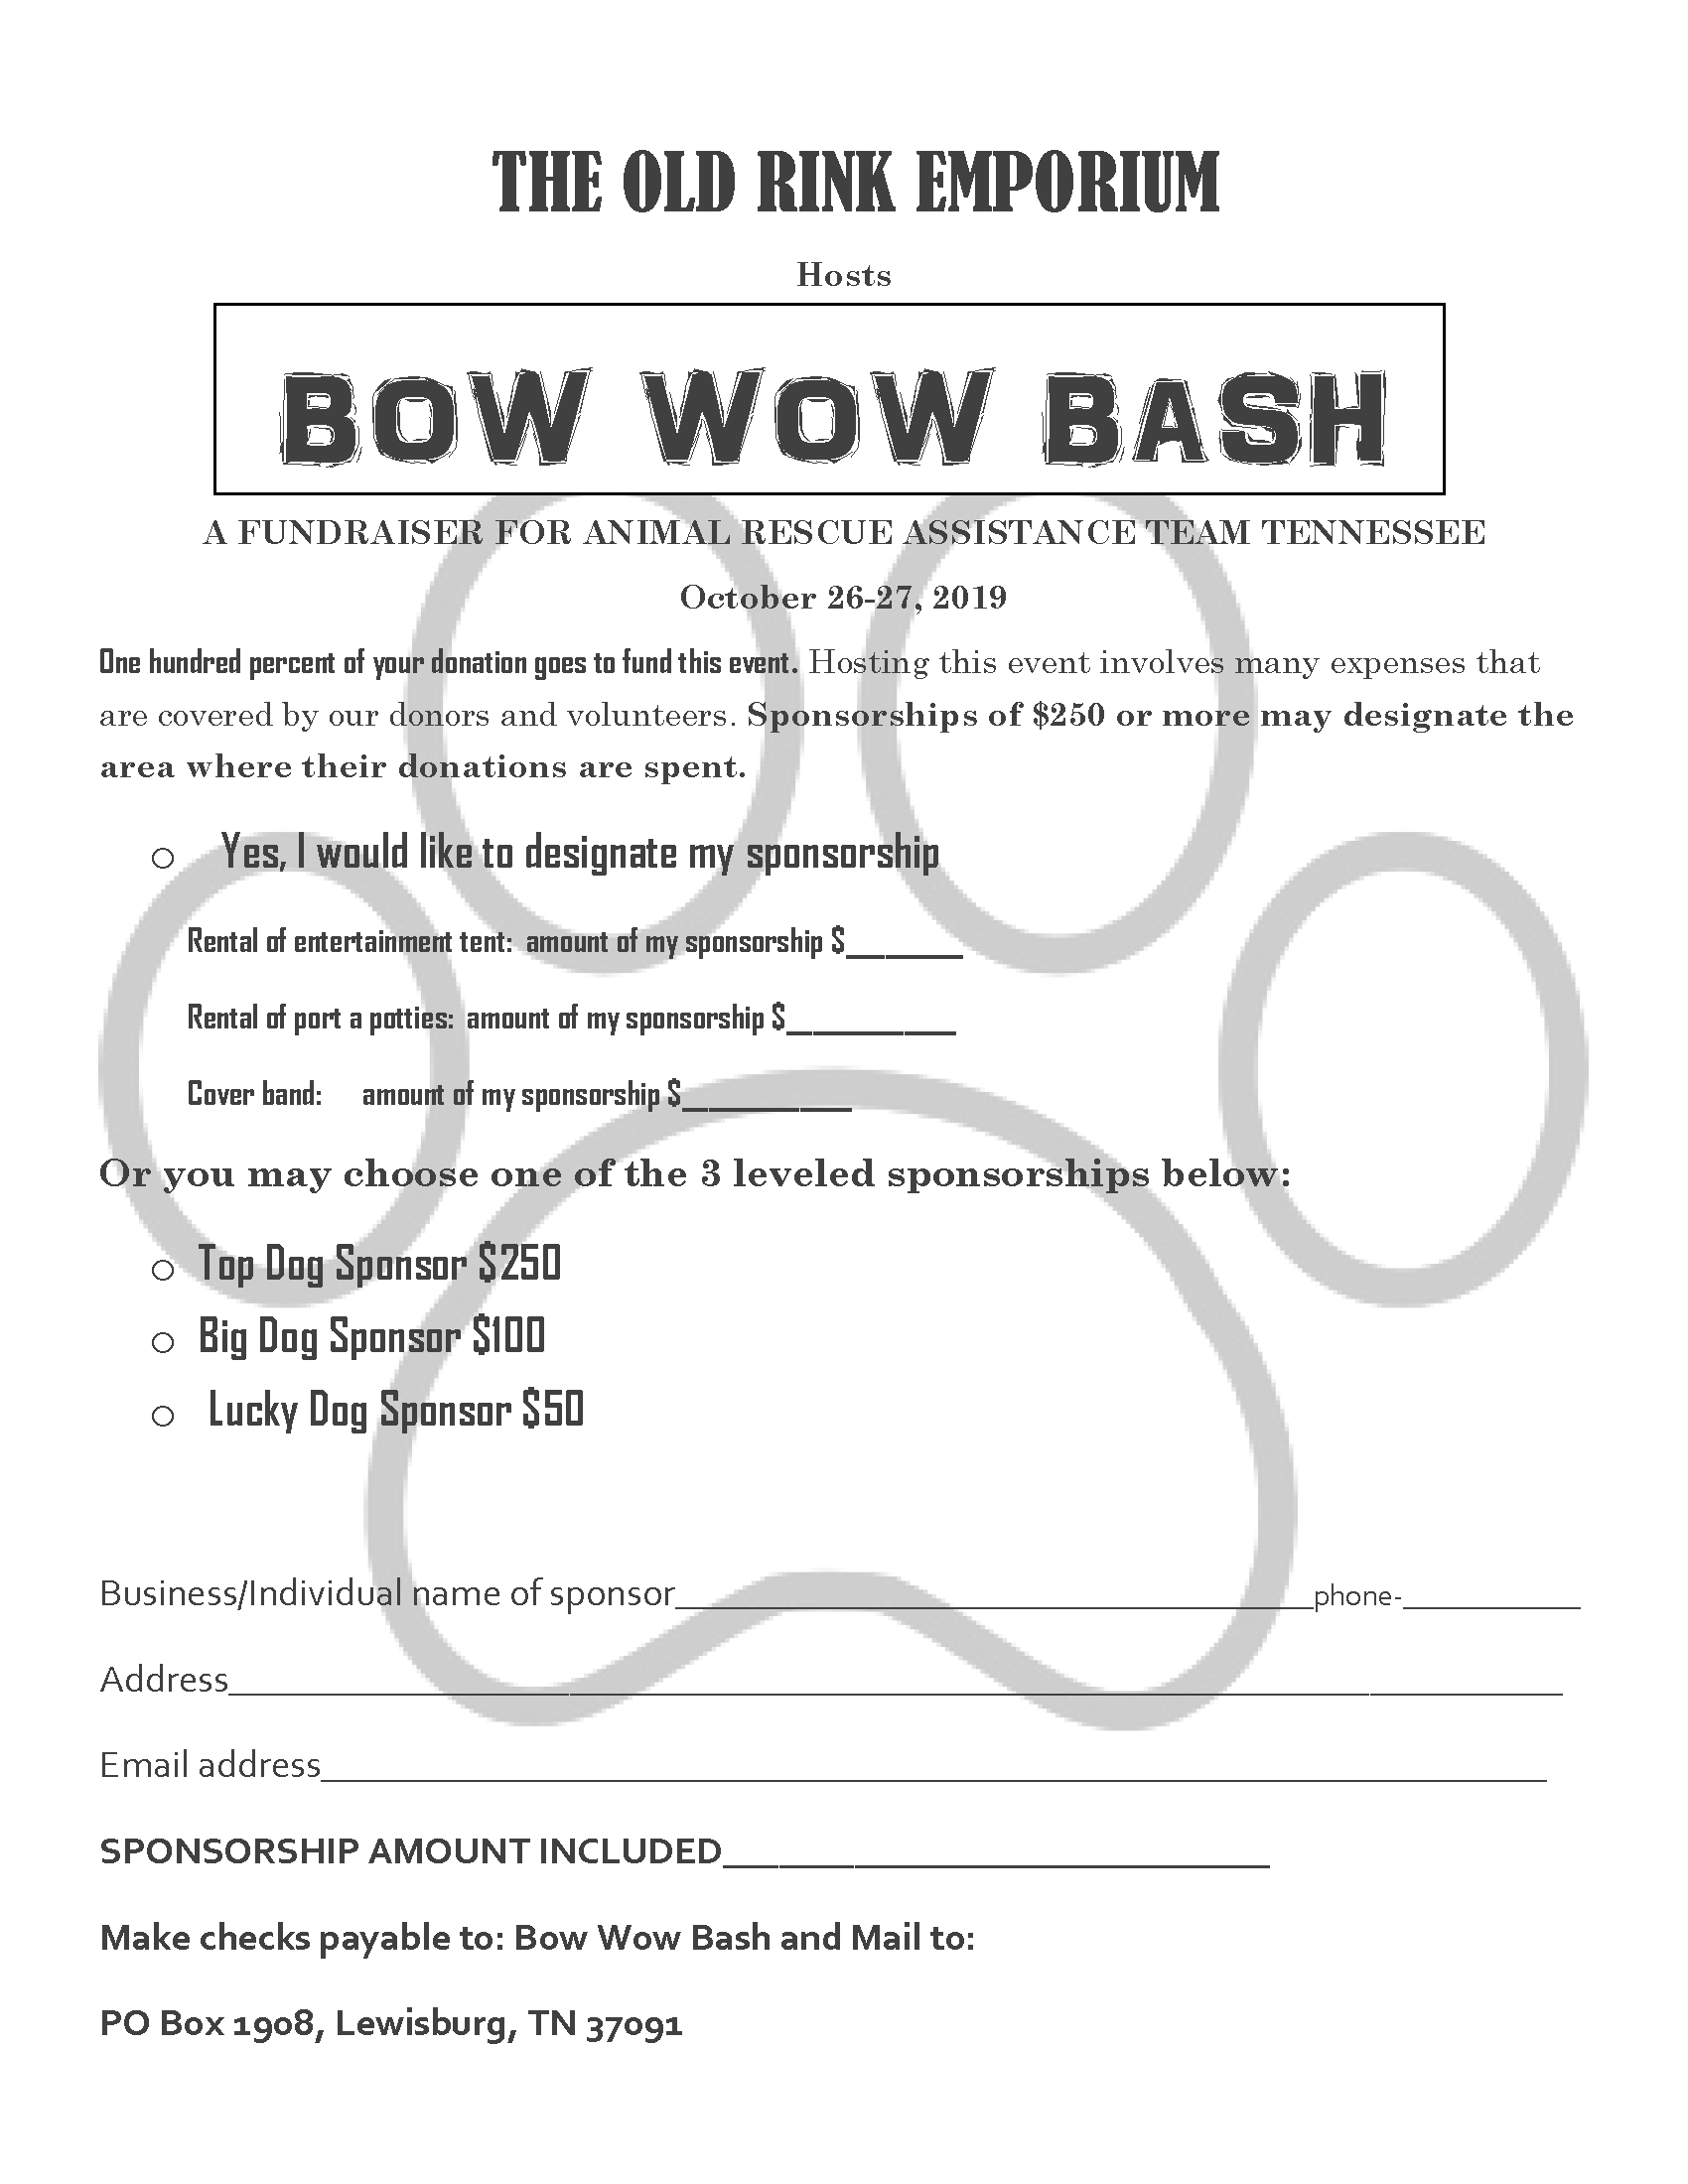 Bow Wow Bash Fall 2019 Sponsorship Form Page 1